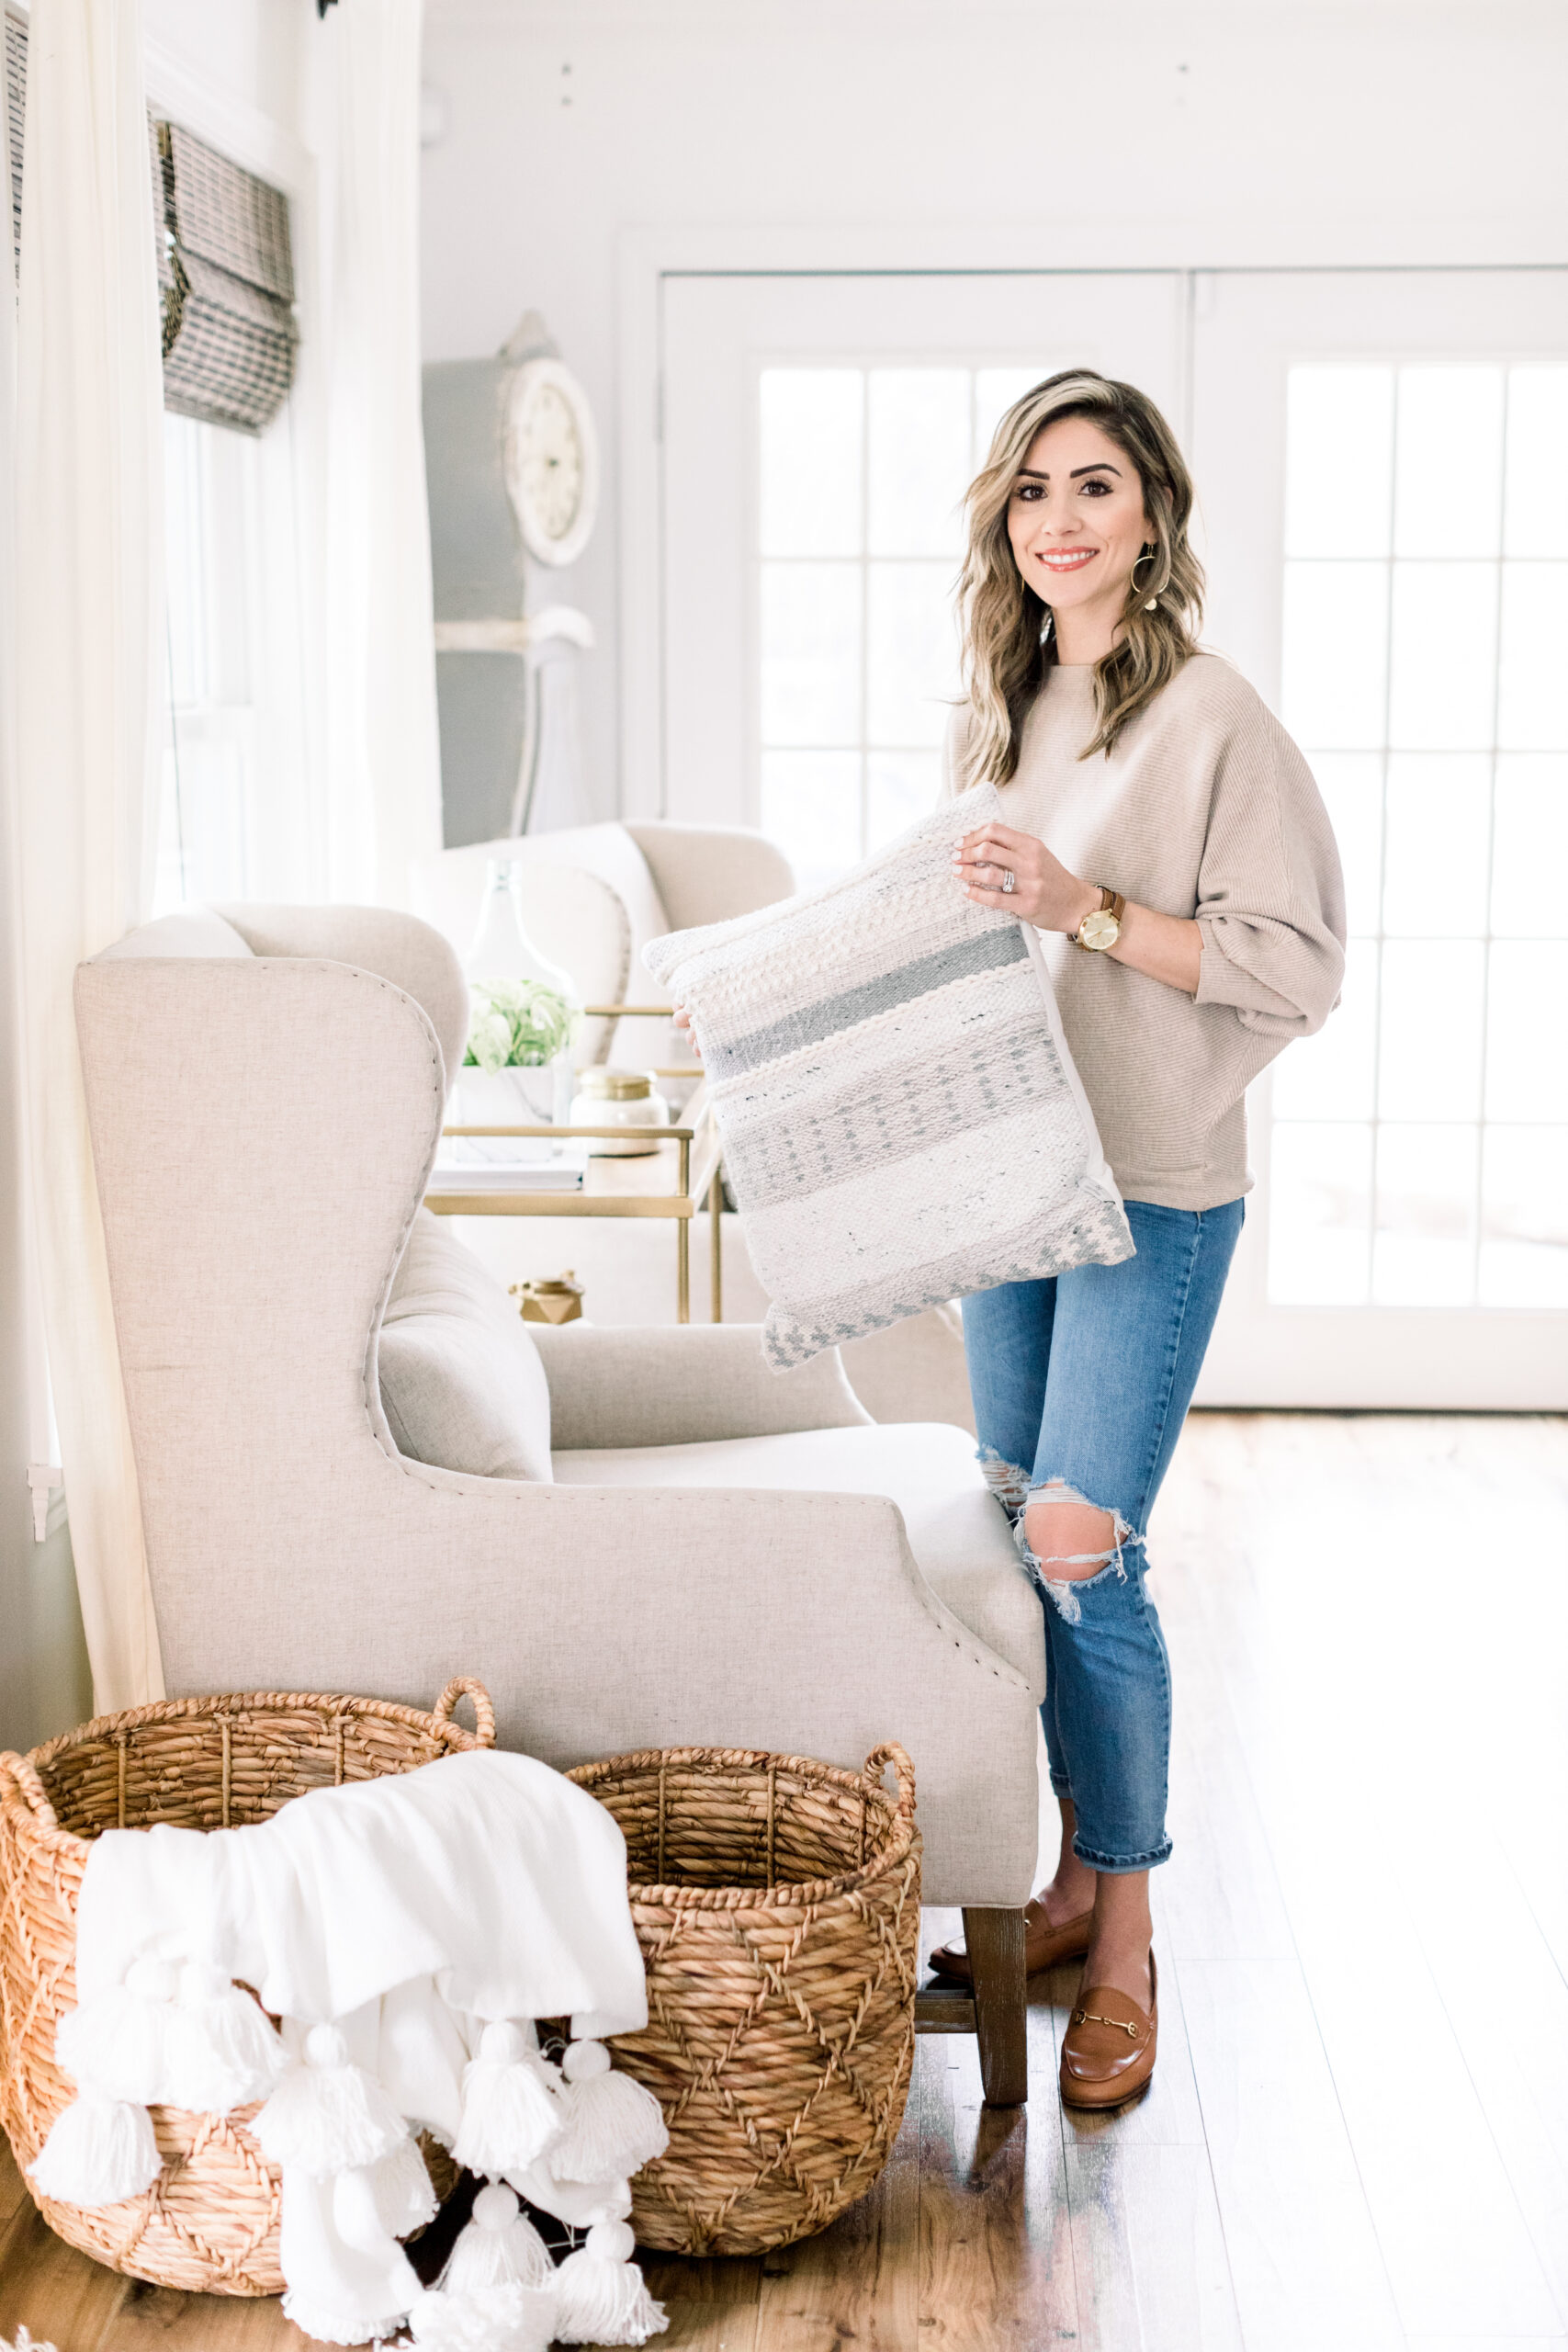 Connecticut life and style blogger Lauren McBride shares all about QVC & HSN's The Big Find event, and shares her experience working with QVC.